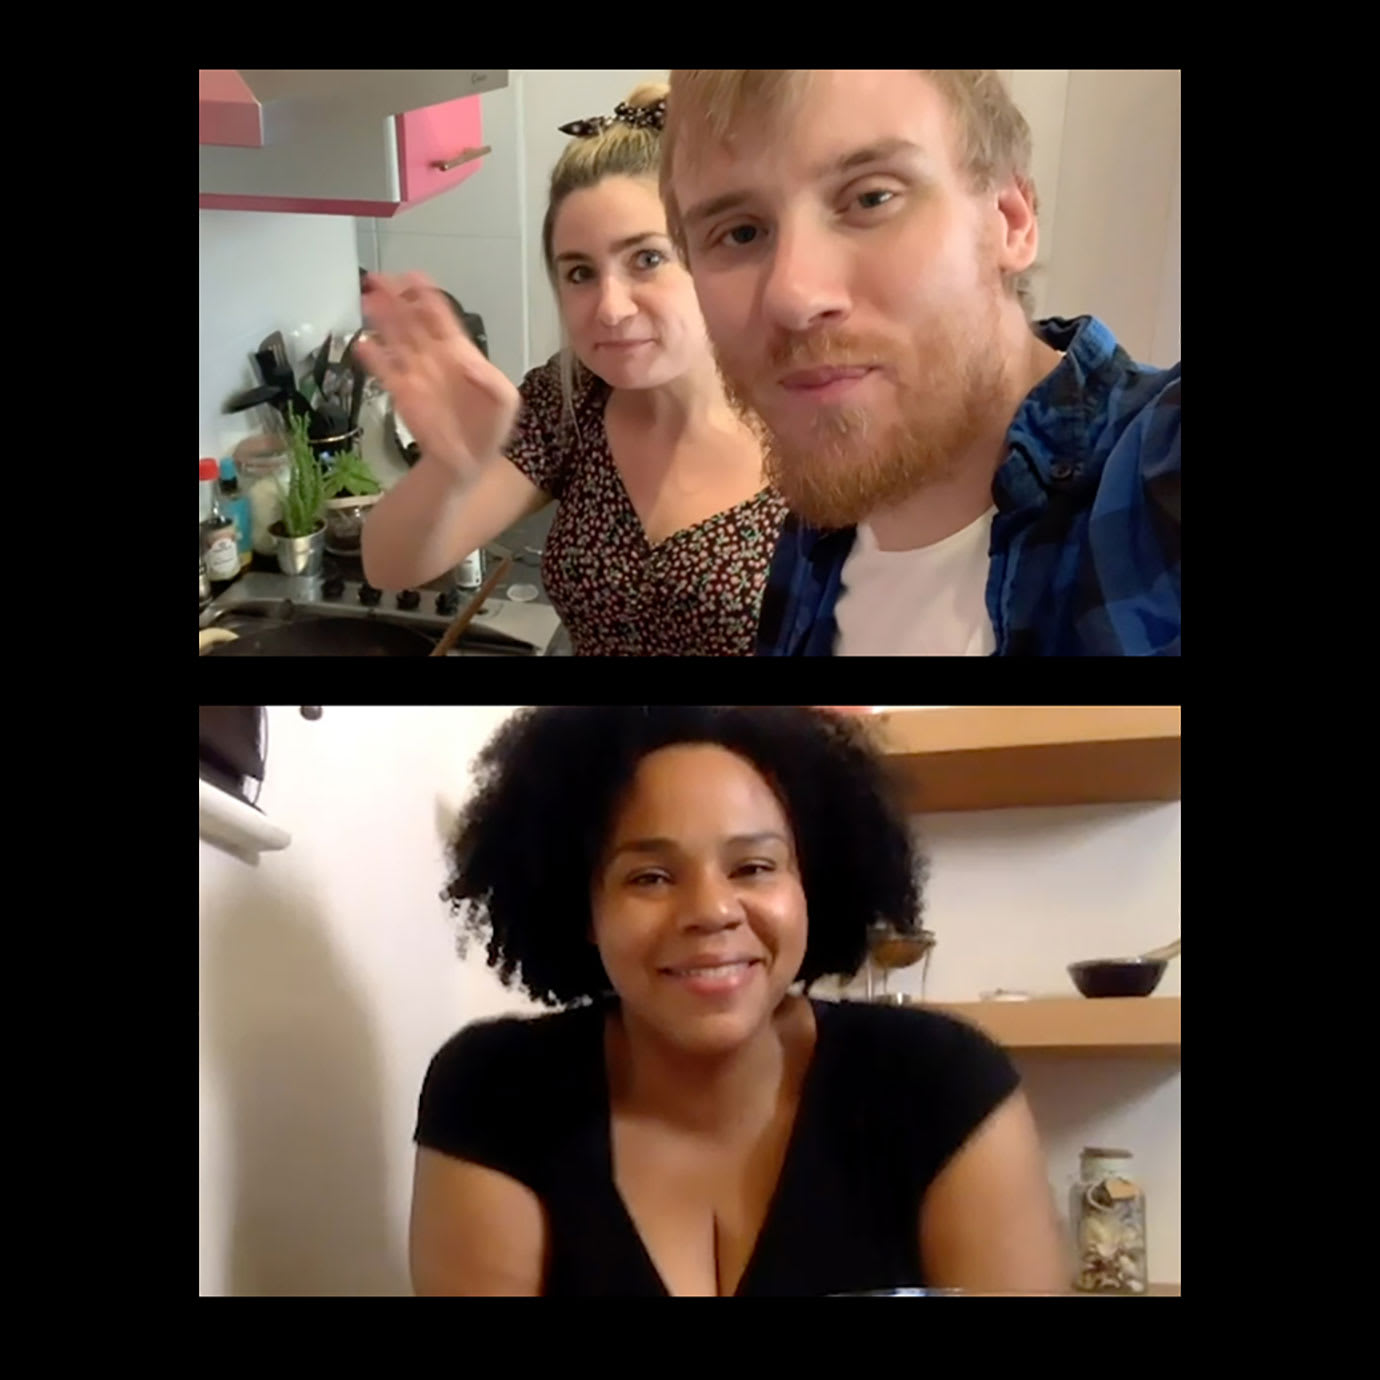 Three people on a video call.